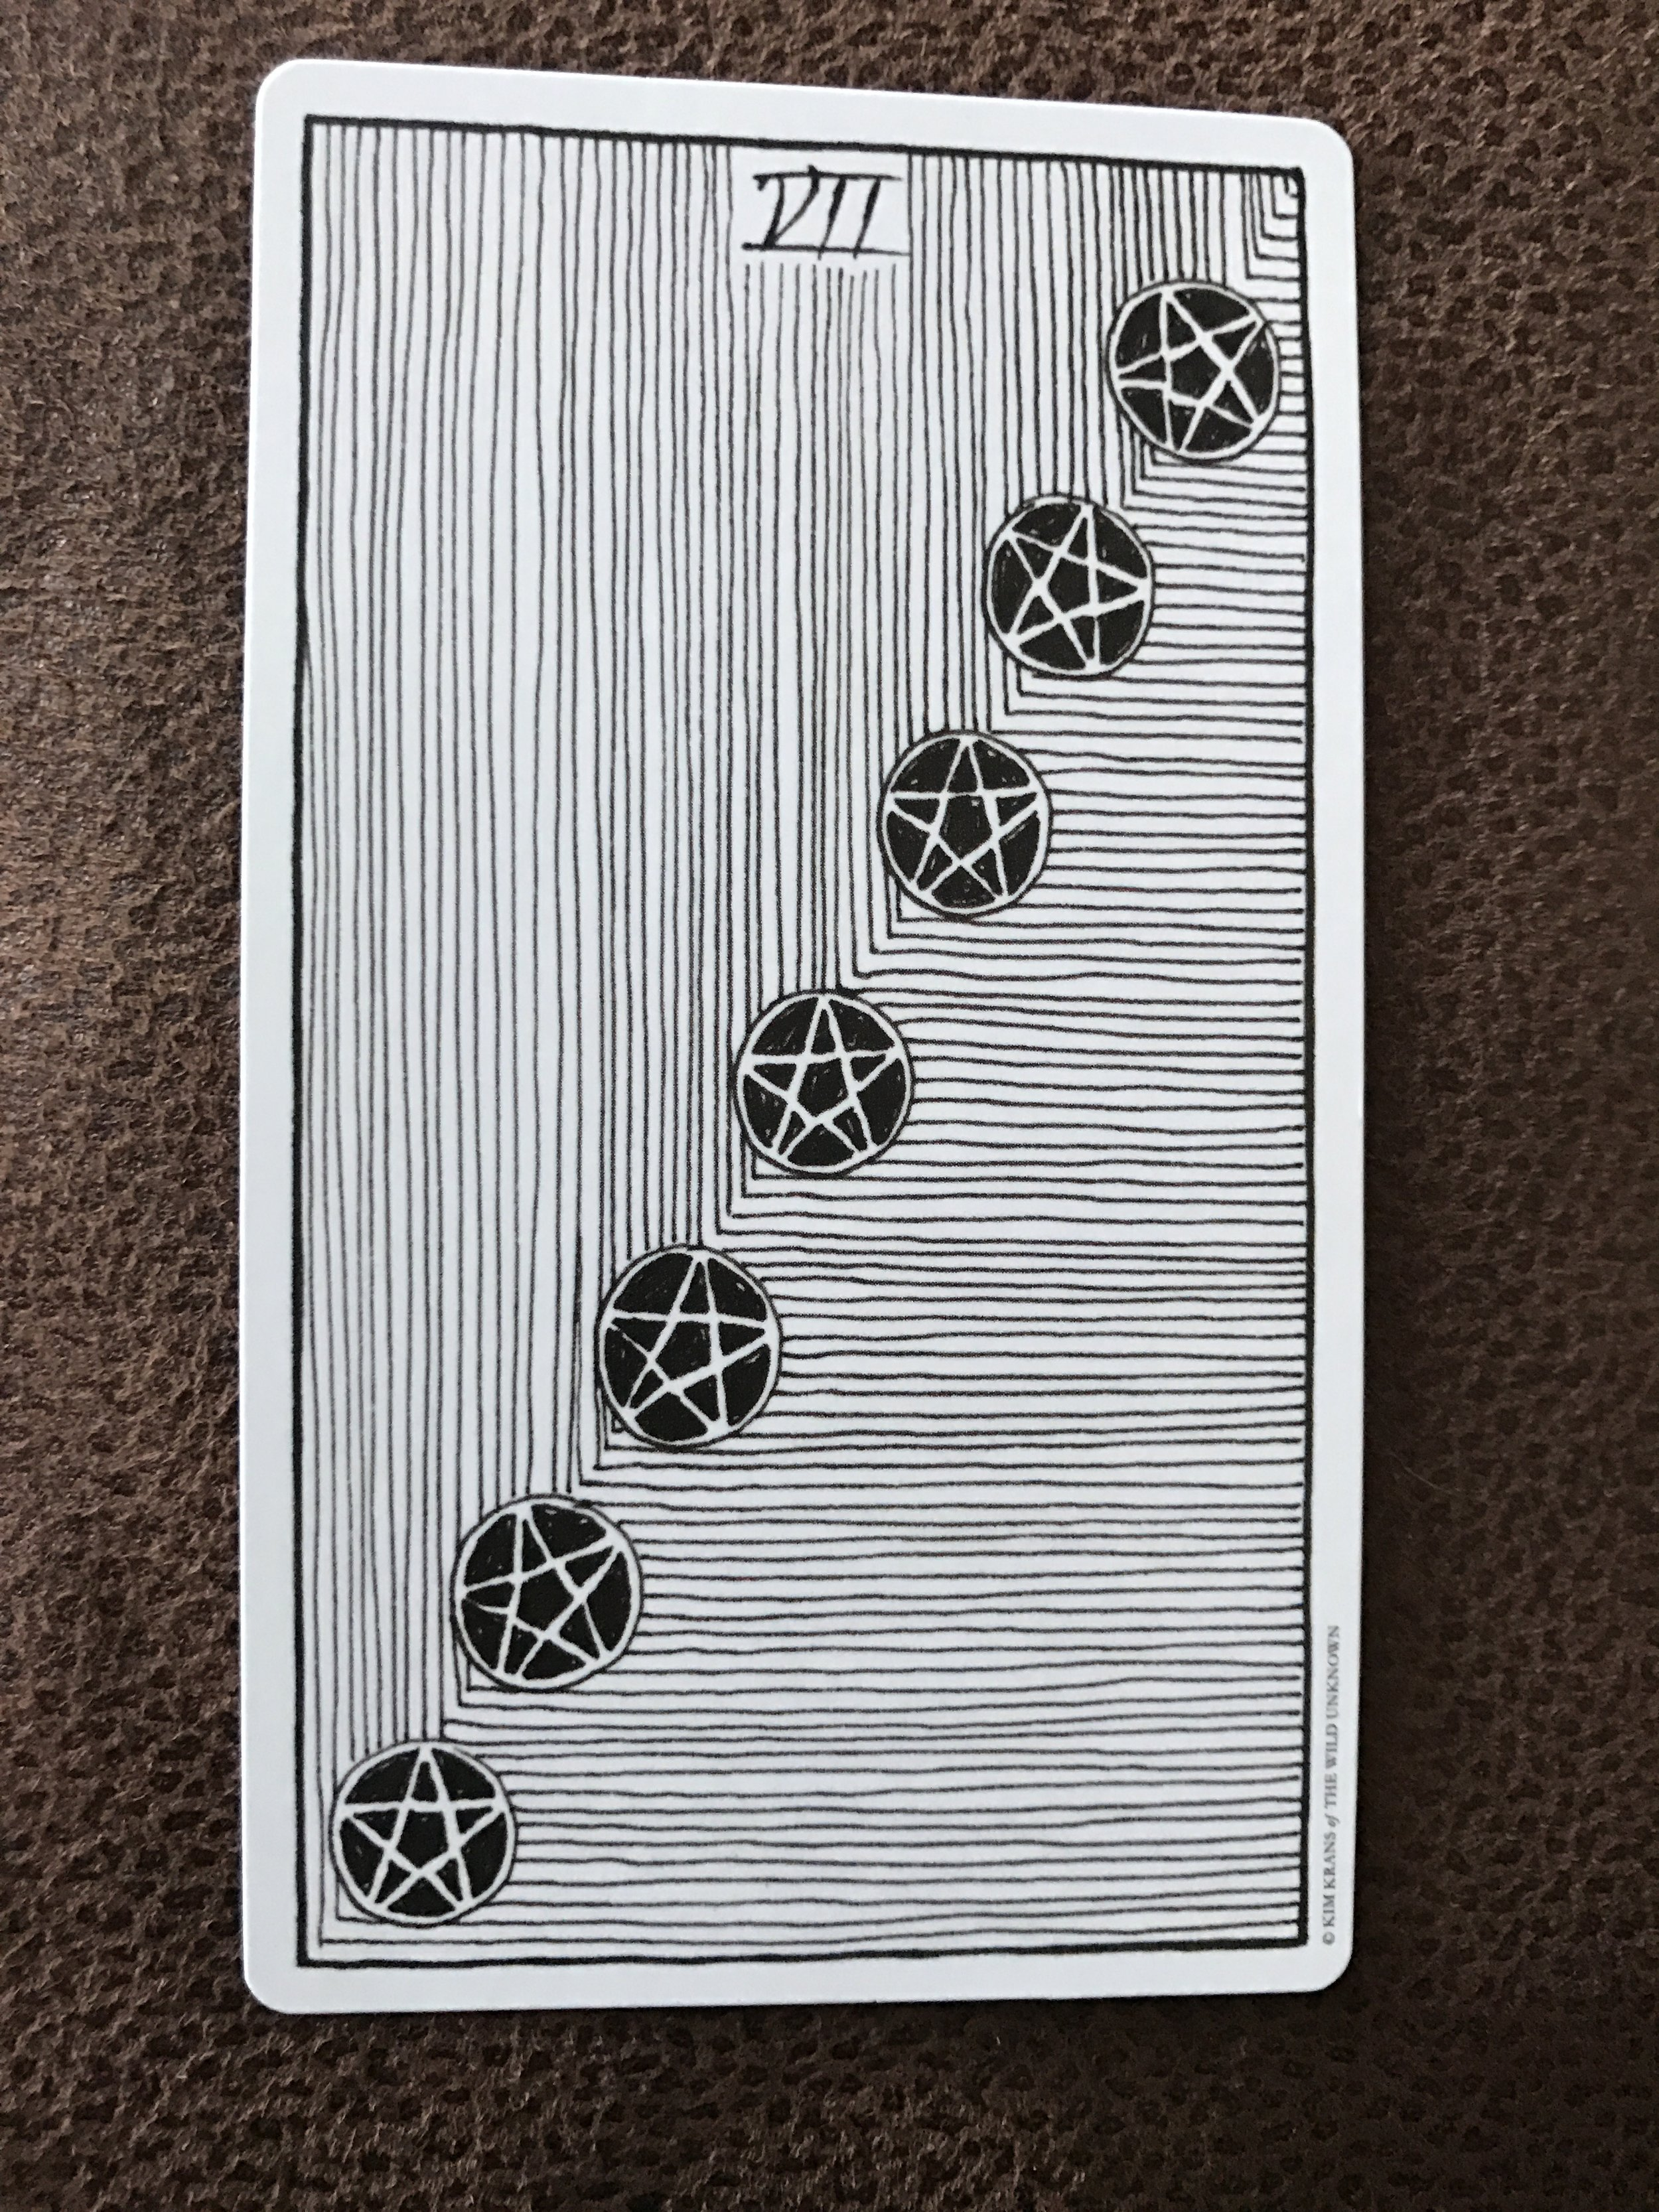 Seven Of Pentacles Writings 3am Tarot Are you too hard on yourself? 3am tarot